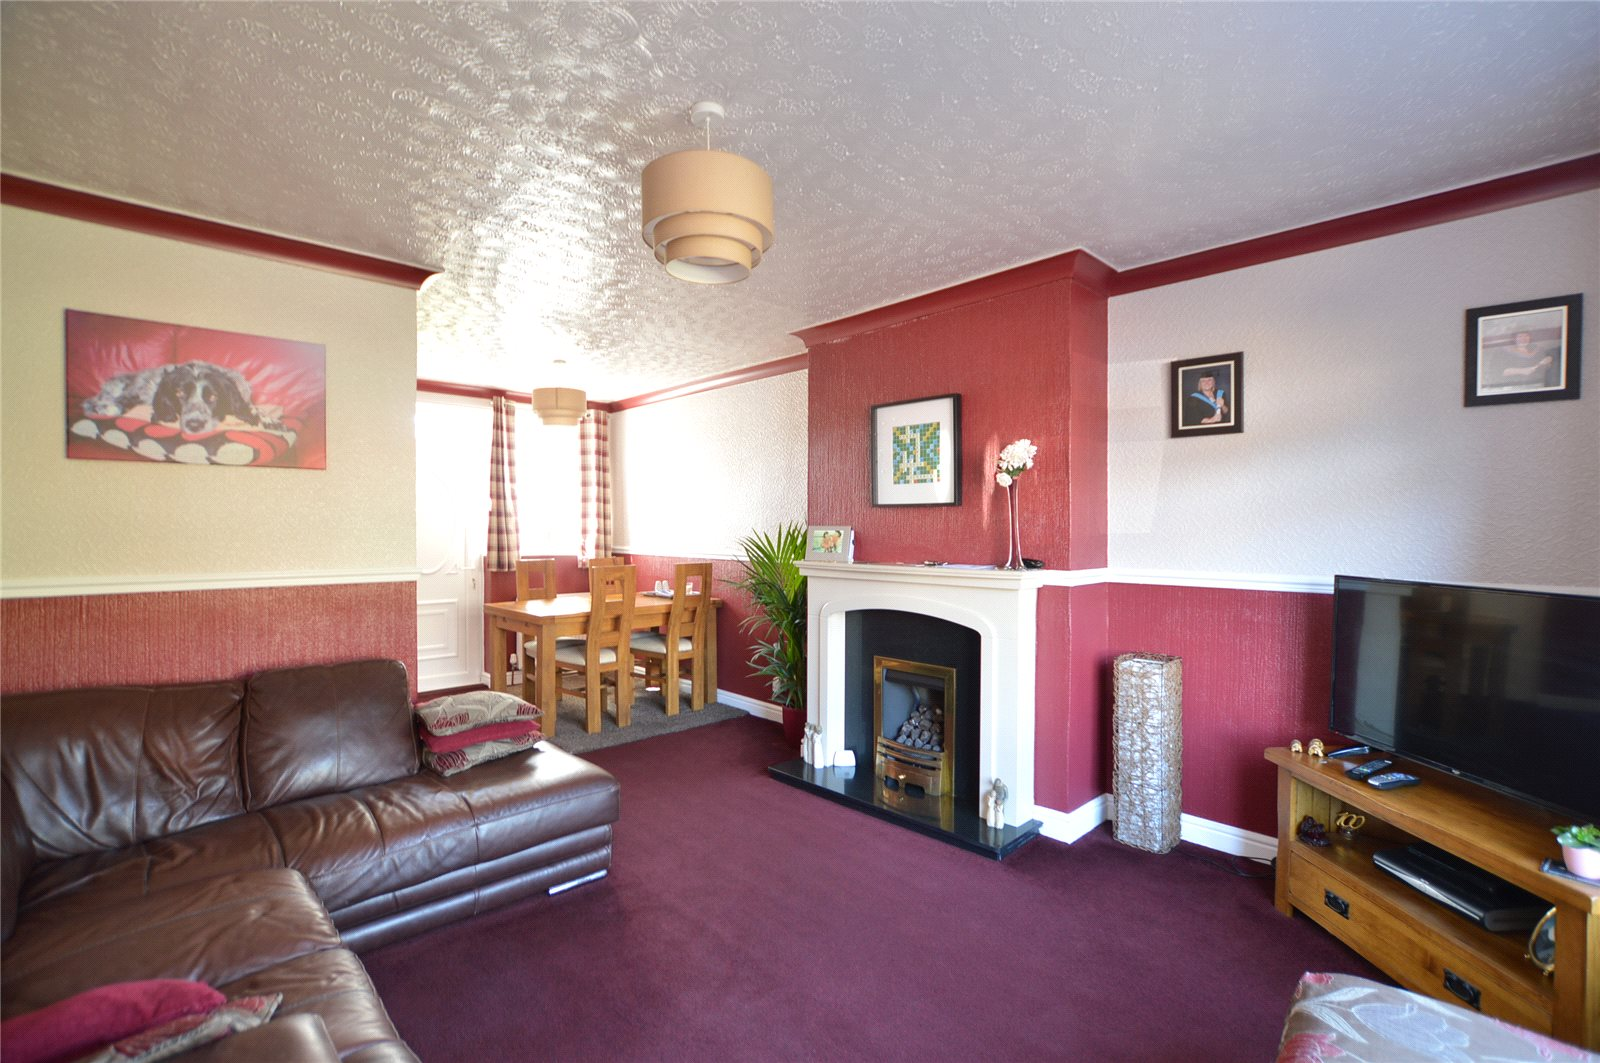 Property for sale in Morley, interior reception room, spacious with leather corner sofa and fireplace